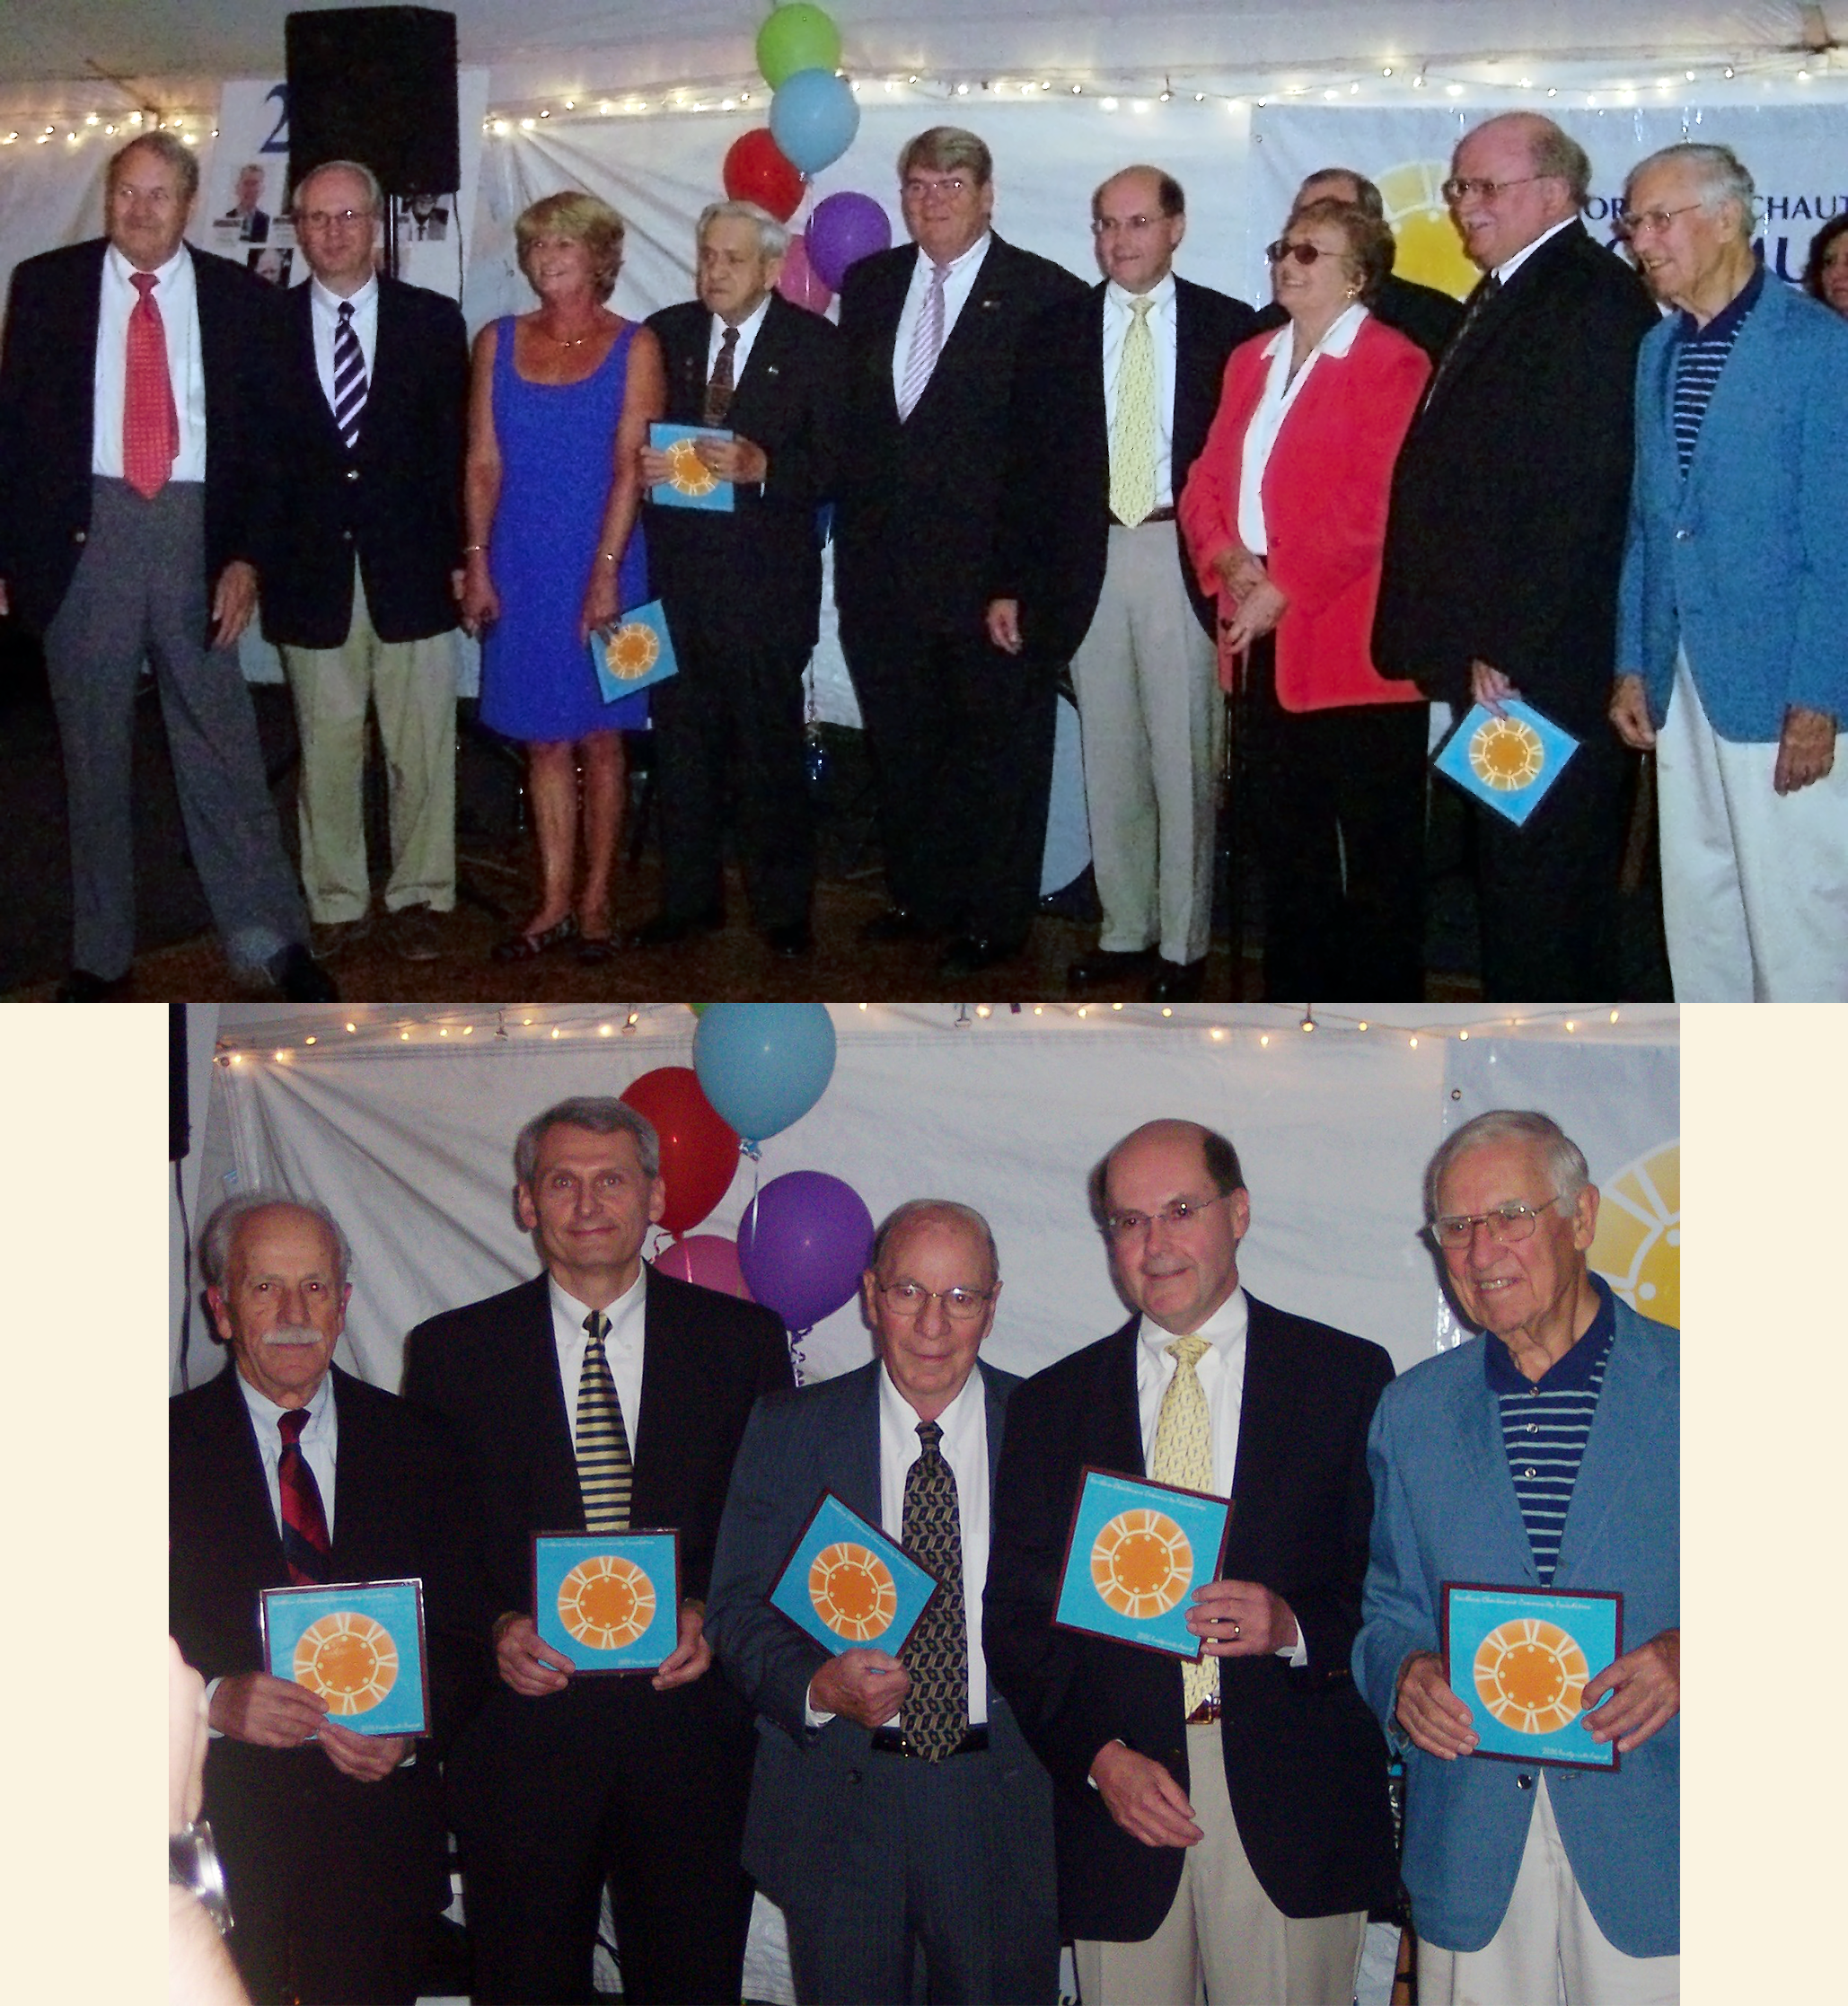 2006 - NCCF's 1st BOD & Incorporators - NCCF First Elected Board of Directors (Top Photo, left to right): Perry Regina, Jeffery Passafaro (representing the late H.K. Williams II), Virginia Passafaro (representing John D. Koch), Richard S. Johnson, James H. Mintum Jr., Janet Wells (representing the late William M. Wells), Douglas Newman, George B. Weaver. Missing from photo: Rocco L. Doino, Andrew W. Dorn, Ann Manly and Donald MacPhee.NCCF Incorporators (Bottom Photo, left to right): David J. Doino, Louis P. DiPalma, Rocco R. Doino, Richard S. Johnson, George B. Weaver. Missing from photo: Andrew W. Dorn.